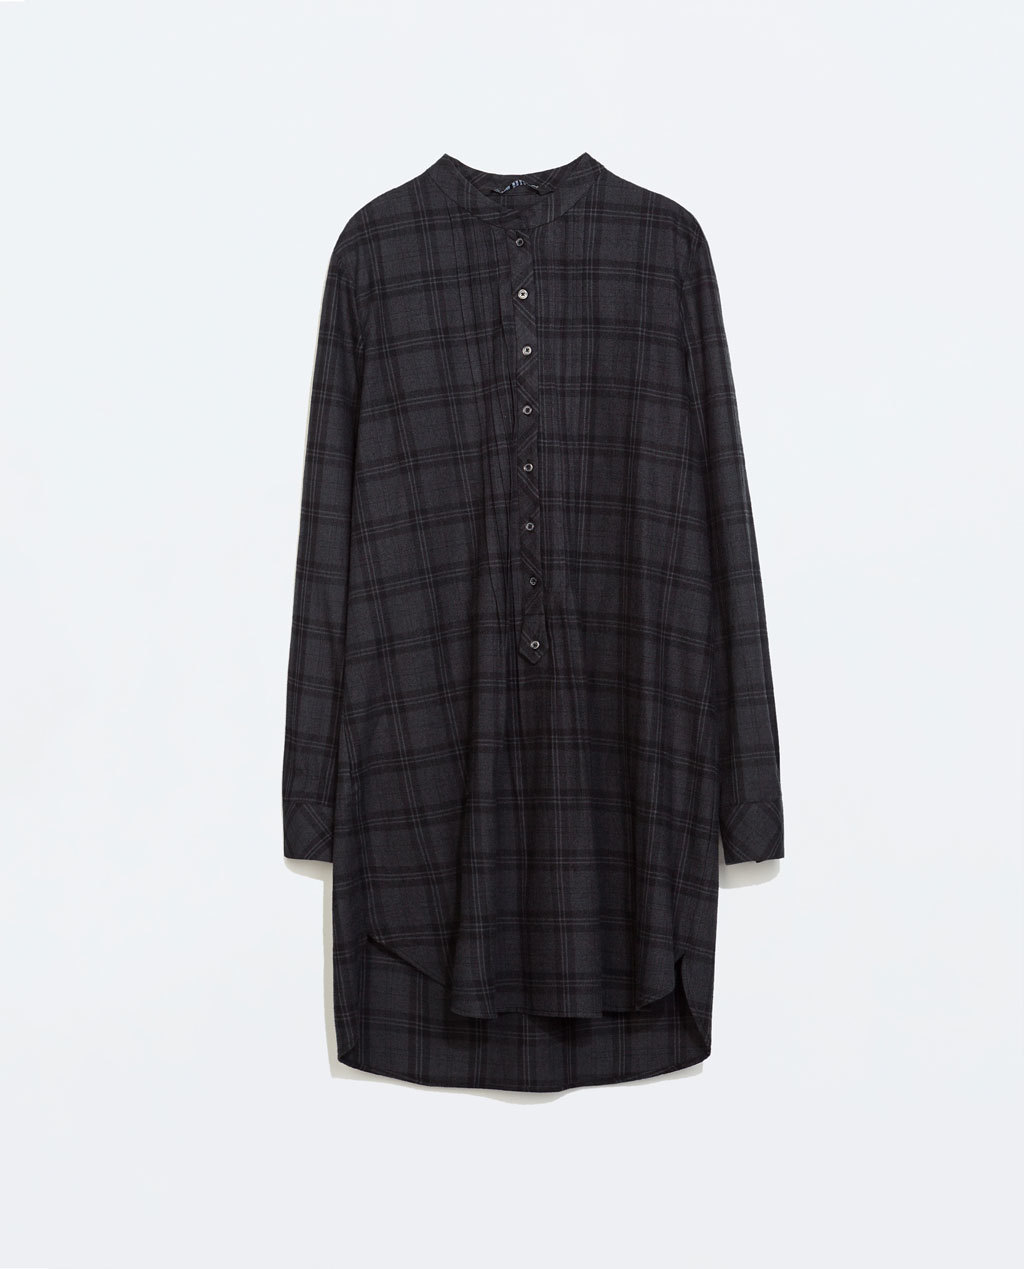 Long Sleeved Check Dress - style: shirt; length: mid thigh; fit: loose; pattern: checked/gingham; predominant colour: charcoal; occasions: casual, creative work; neckline: collarstand; fibres: cotton - 100%; sleeve length: long sleeve; sleeve style: standard; texture group: cotton feel fabrics; pattern type: fabric; pattern size: standard; trends: zesty shades; season: a/w 2014